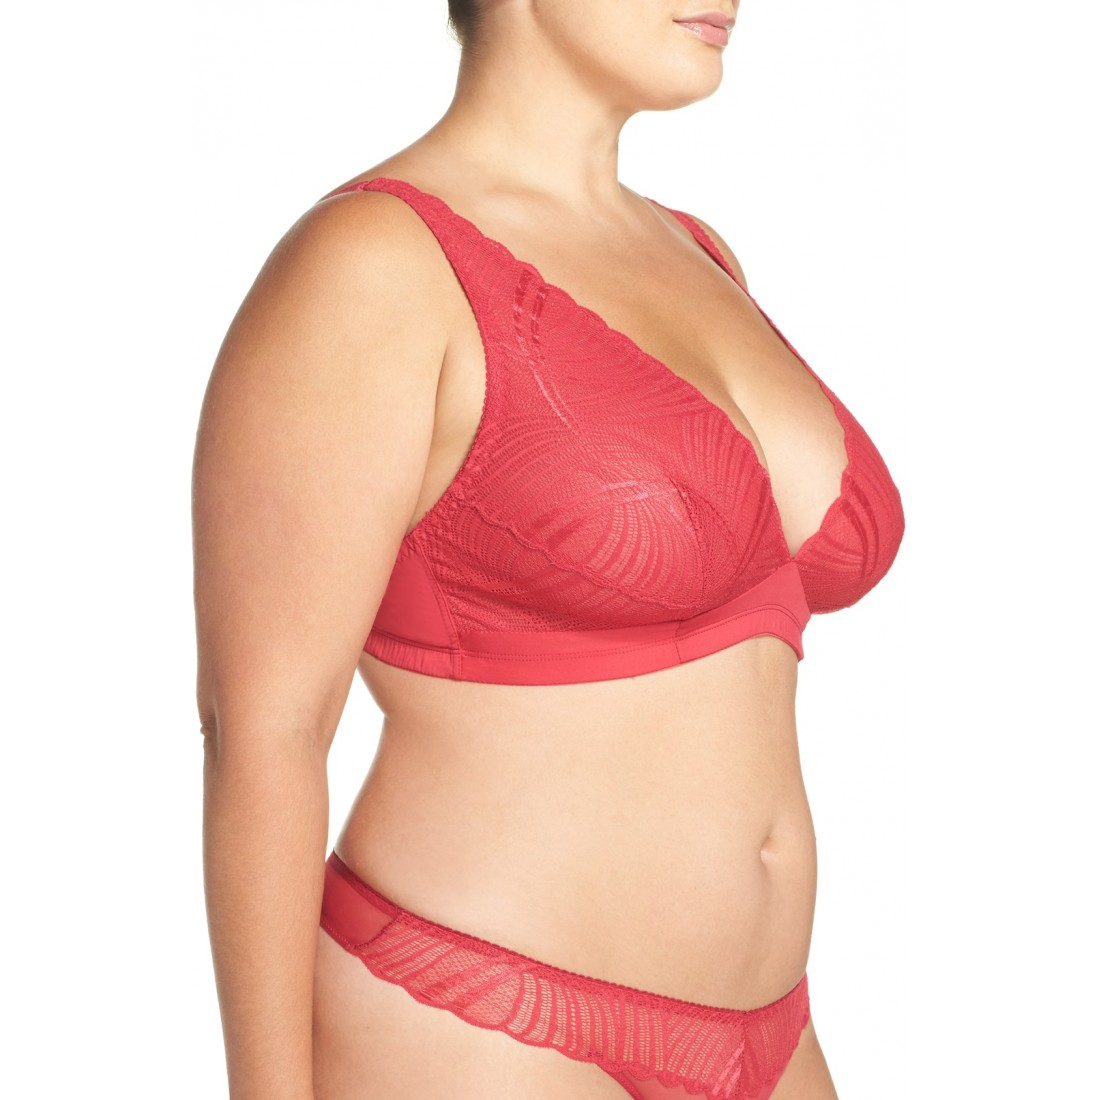 934fb3231a9 Cosabella Minoa Wireless Triangle Bra (Plus Size) NS5228611